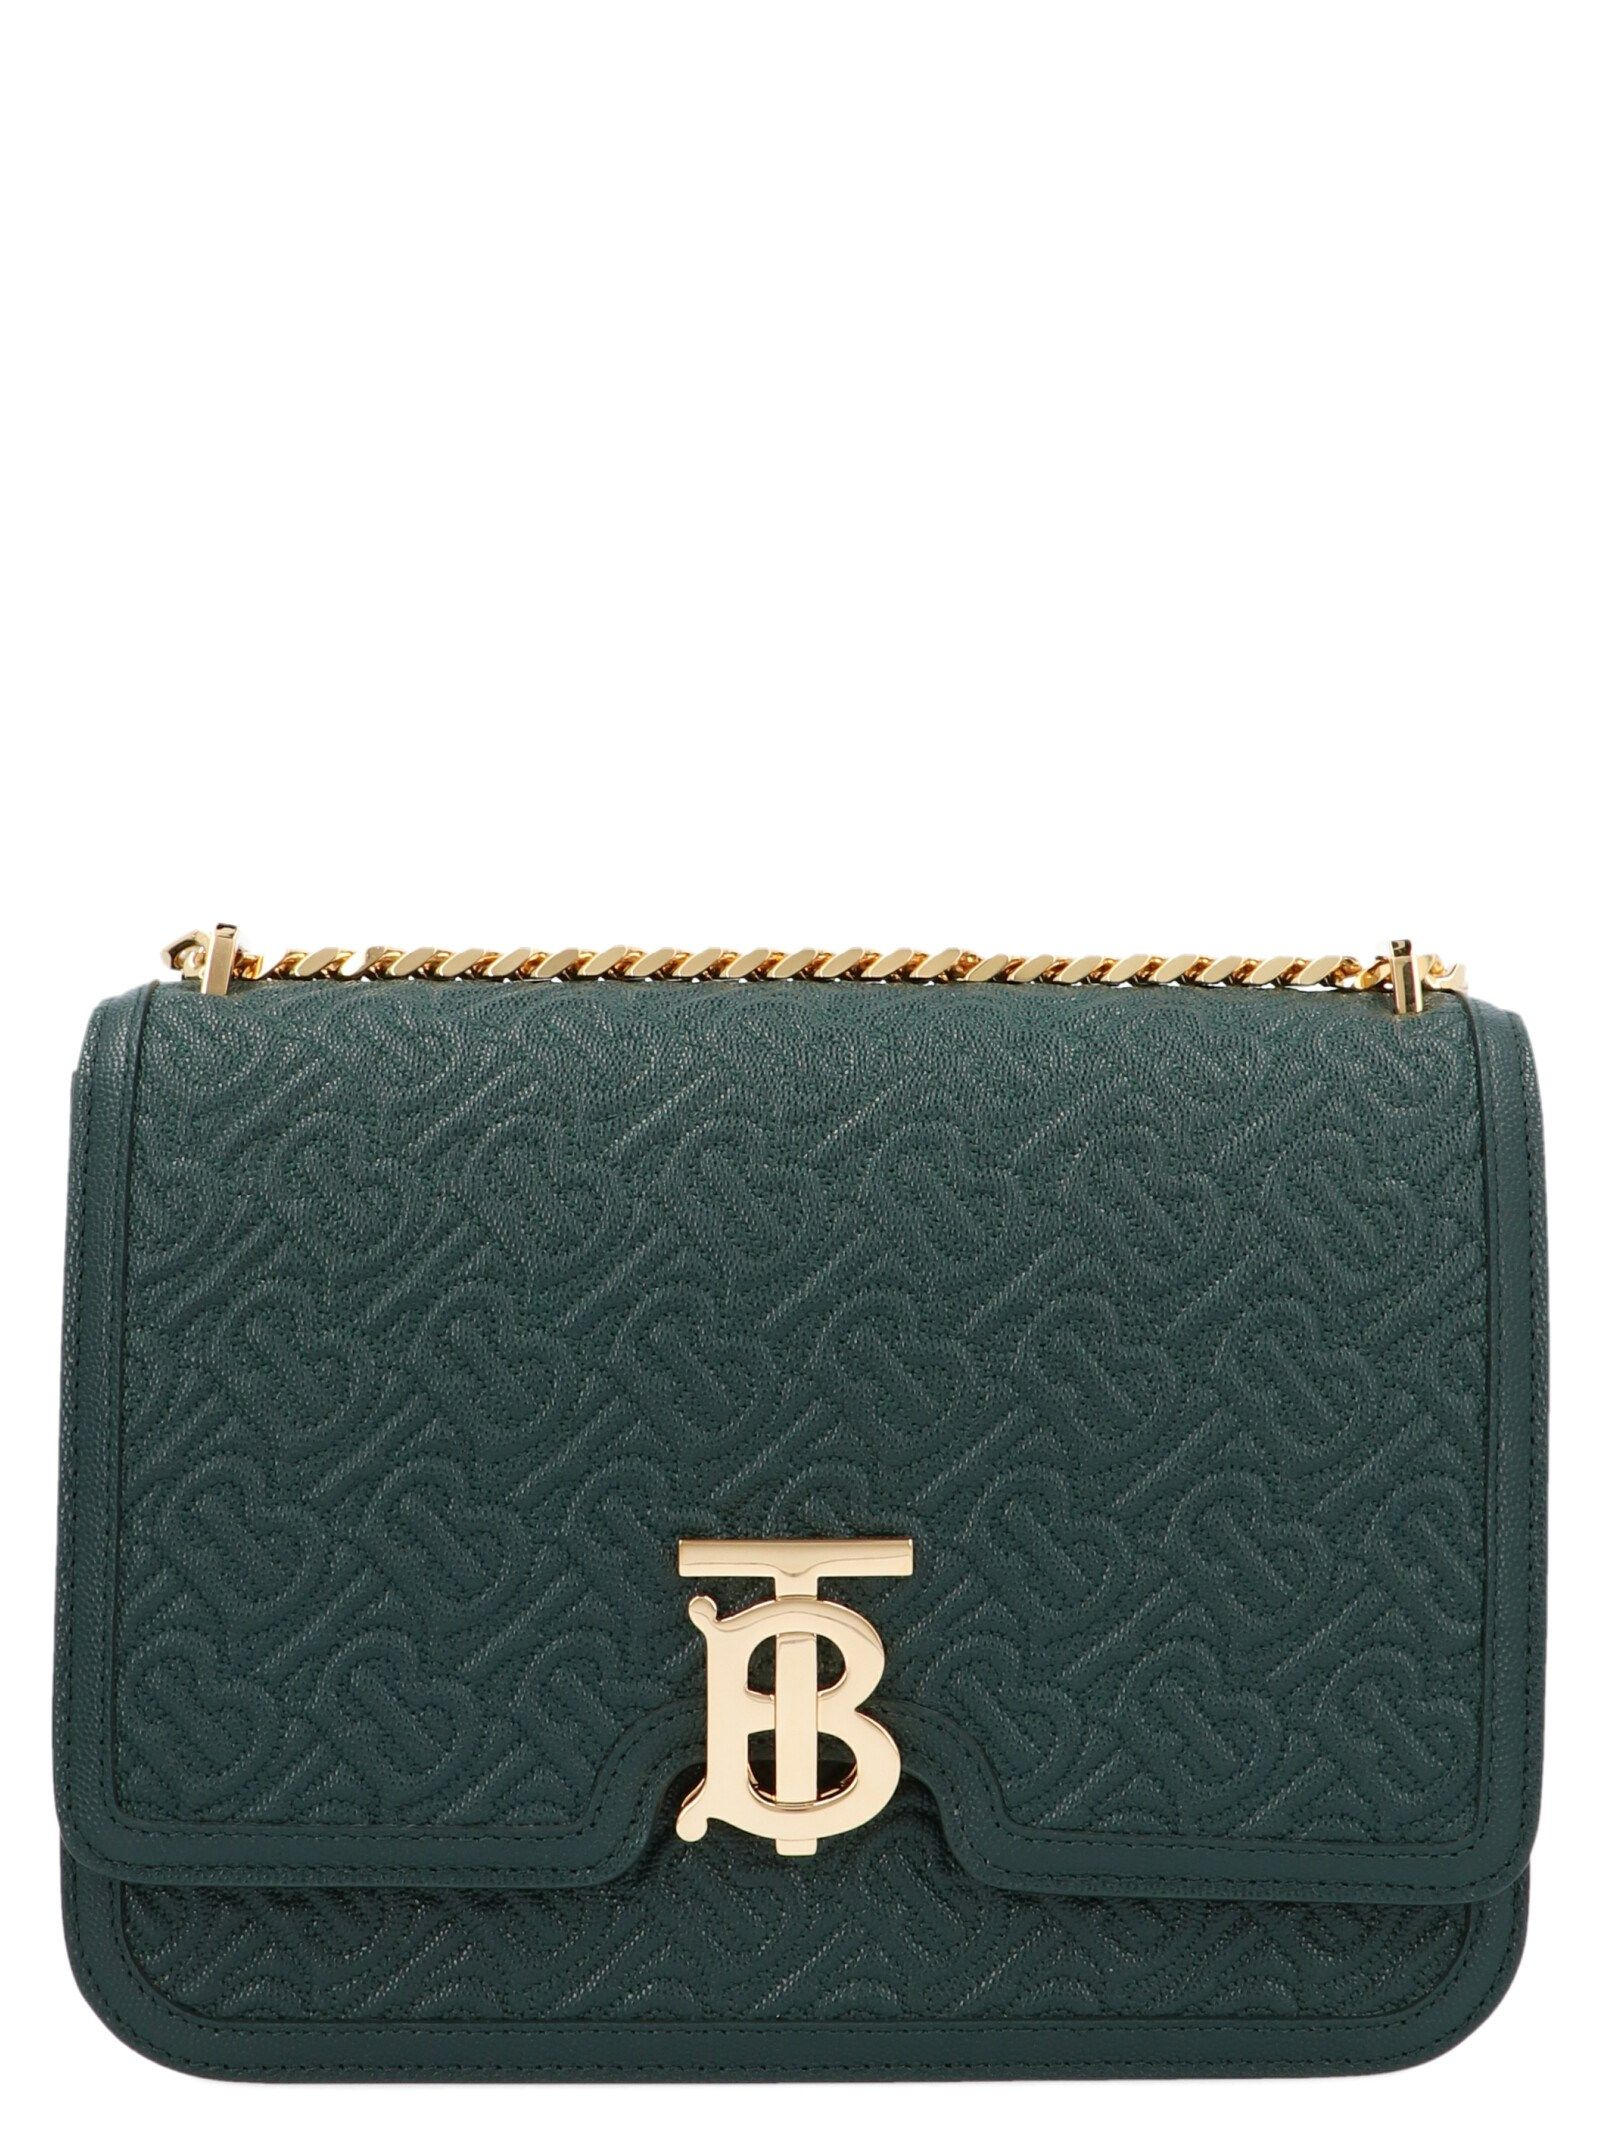 Burberry Women's Green Leather Shoulder Bag